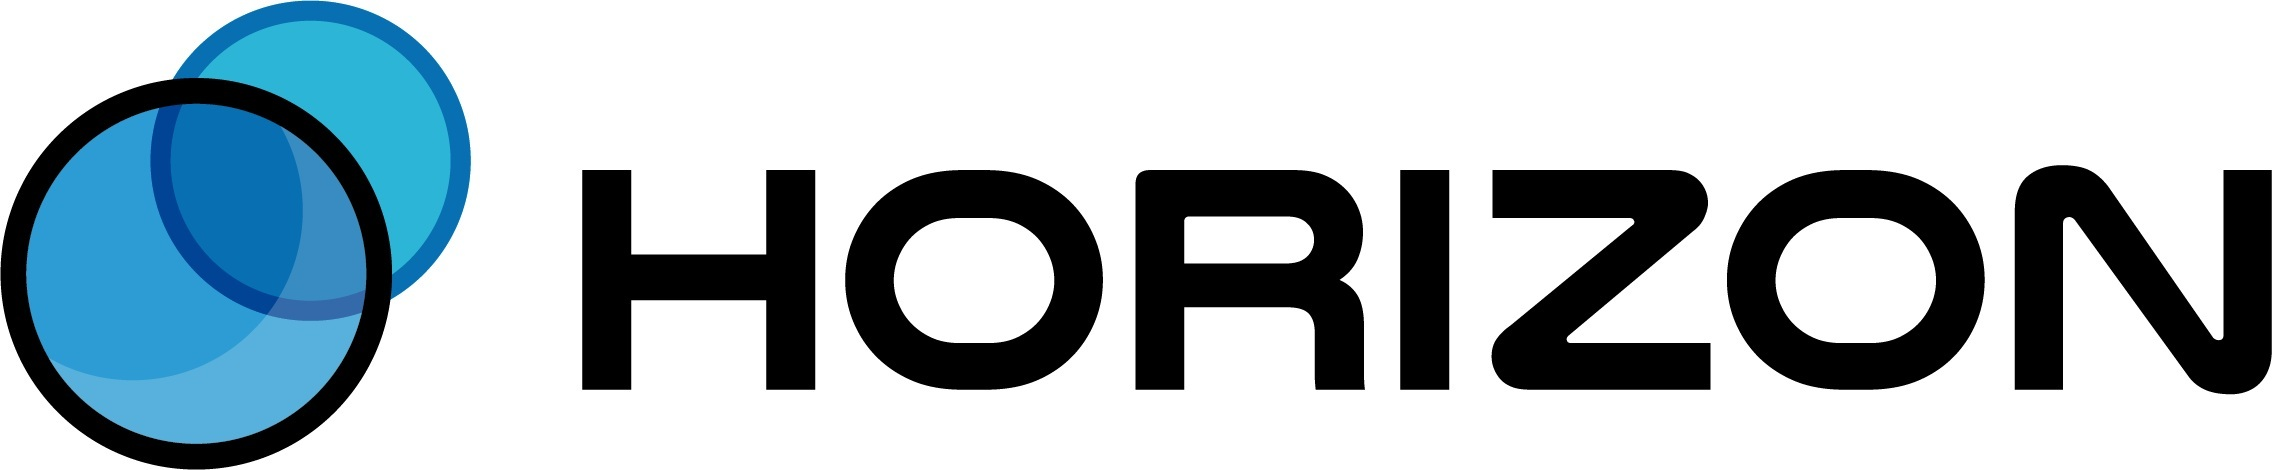 HORIZON_LOGO_HORIZONTAL_COLOR.png